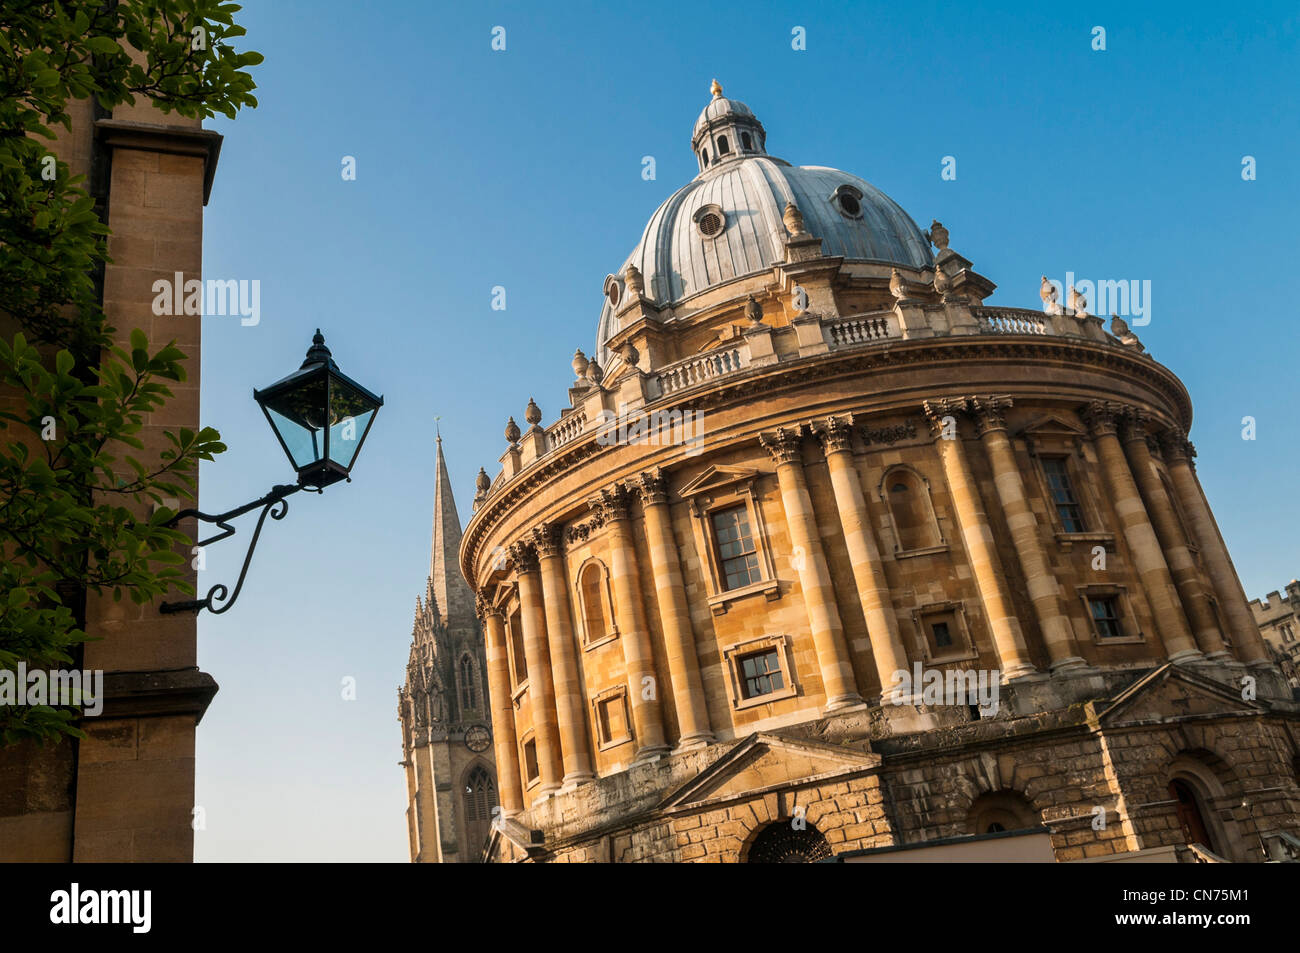 Radcliffe Camera building in Oxford, England, UK - Stock Image